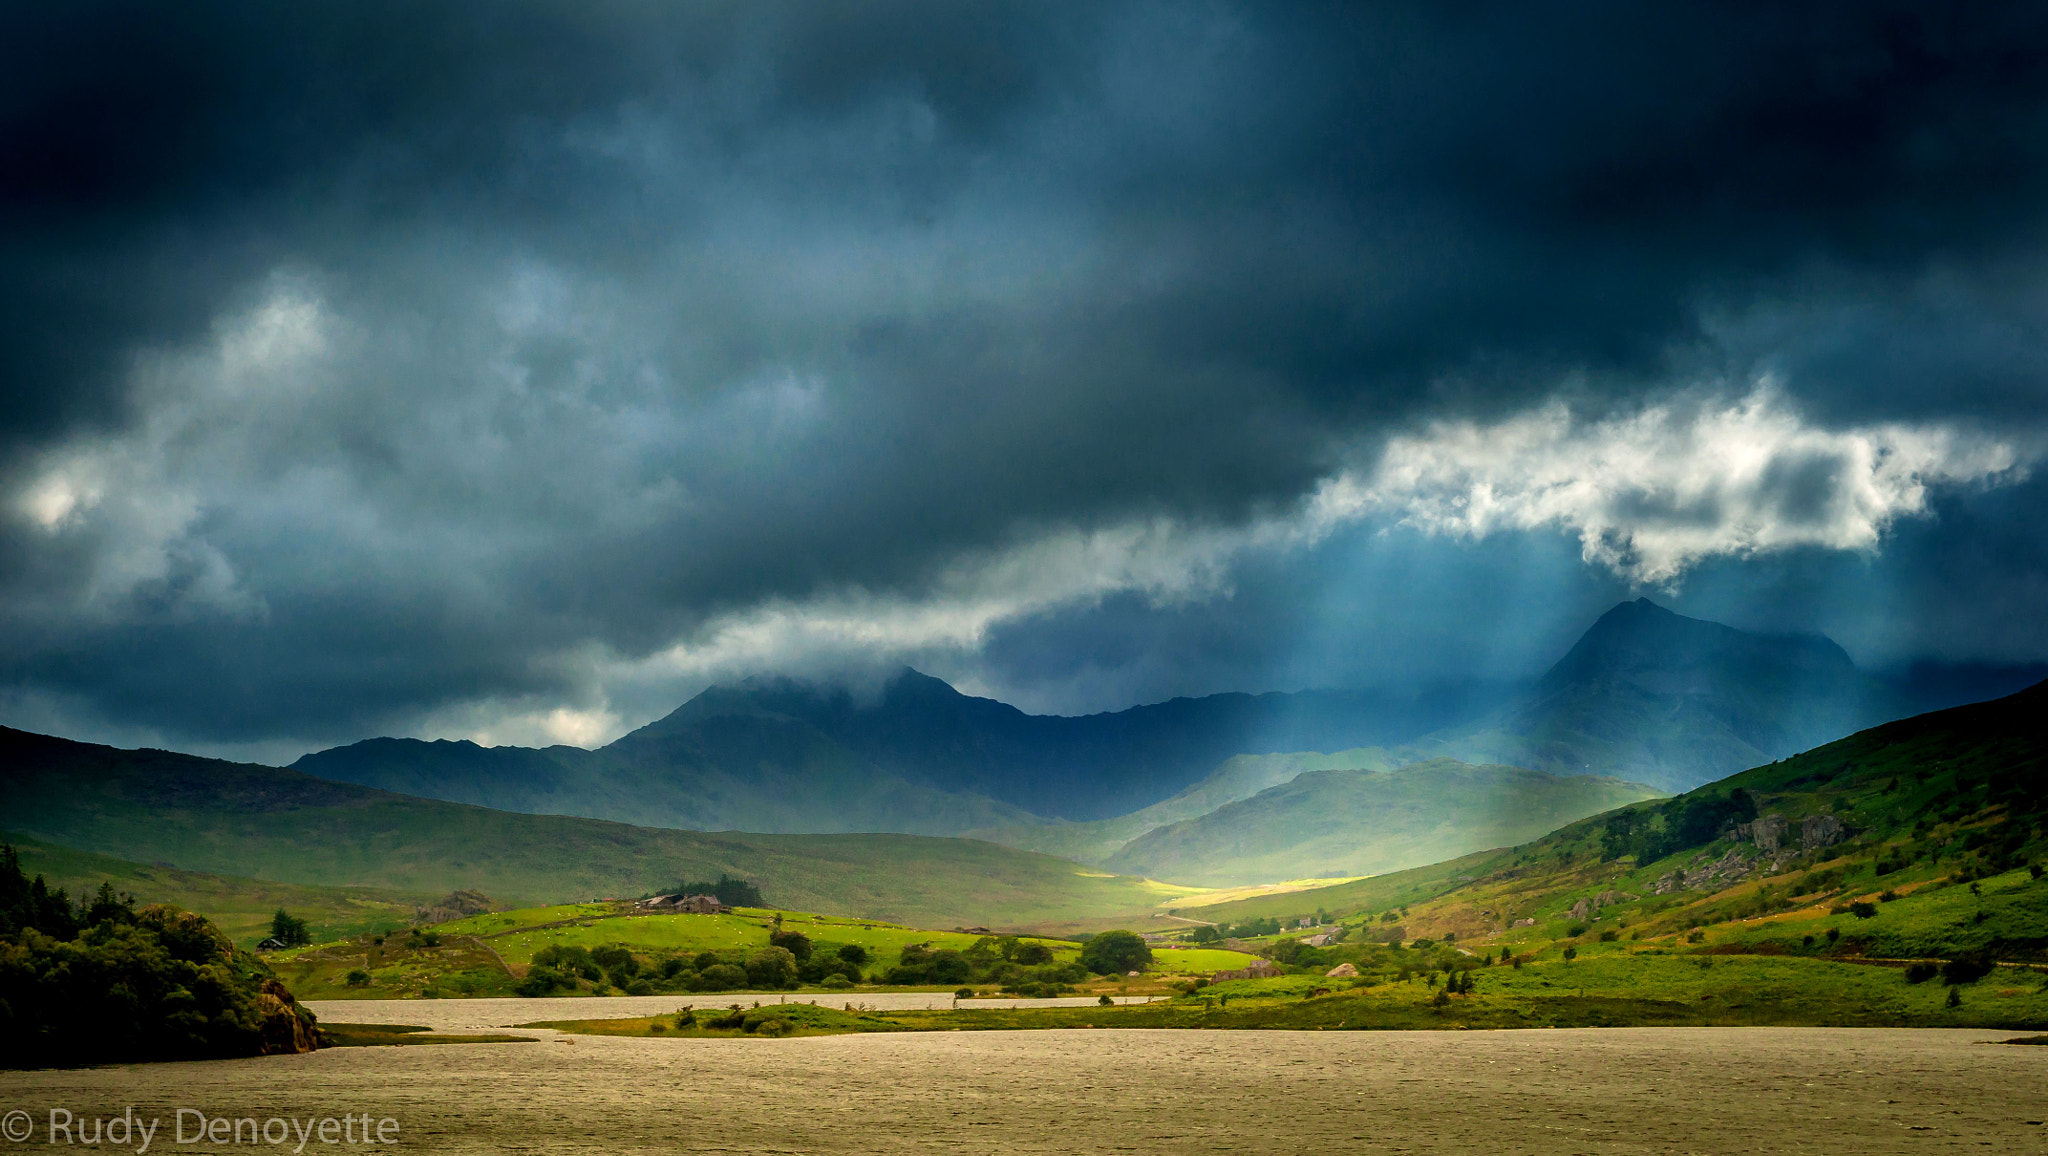 Photograph Wales by Rudy Denoyette on 500px